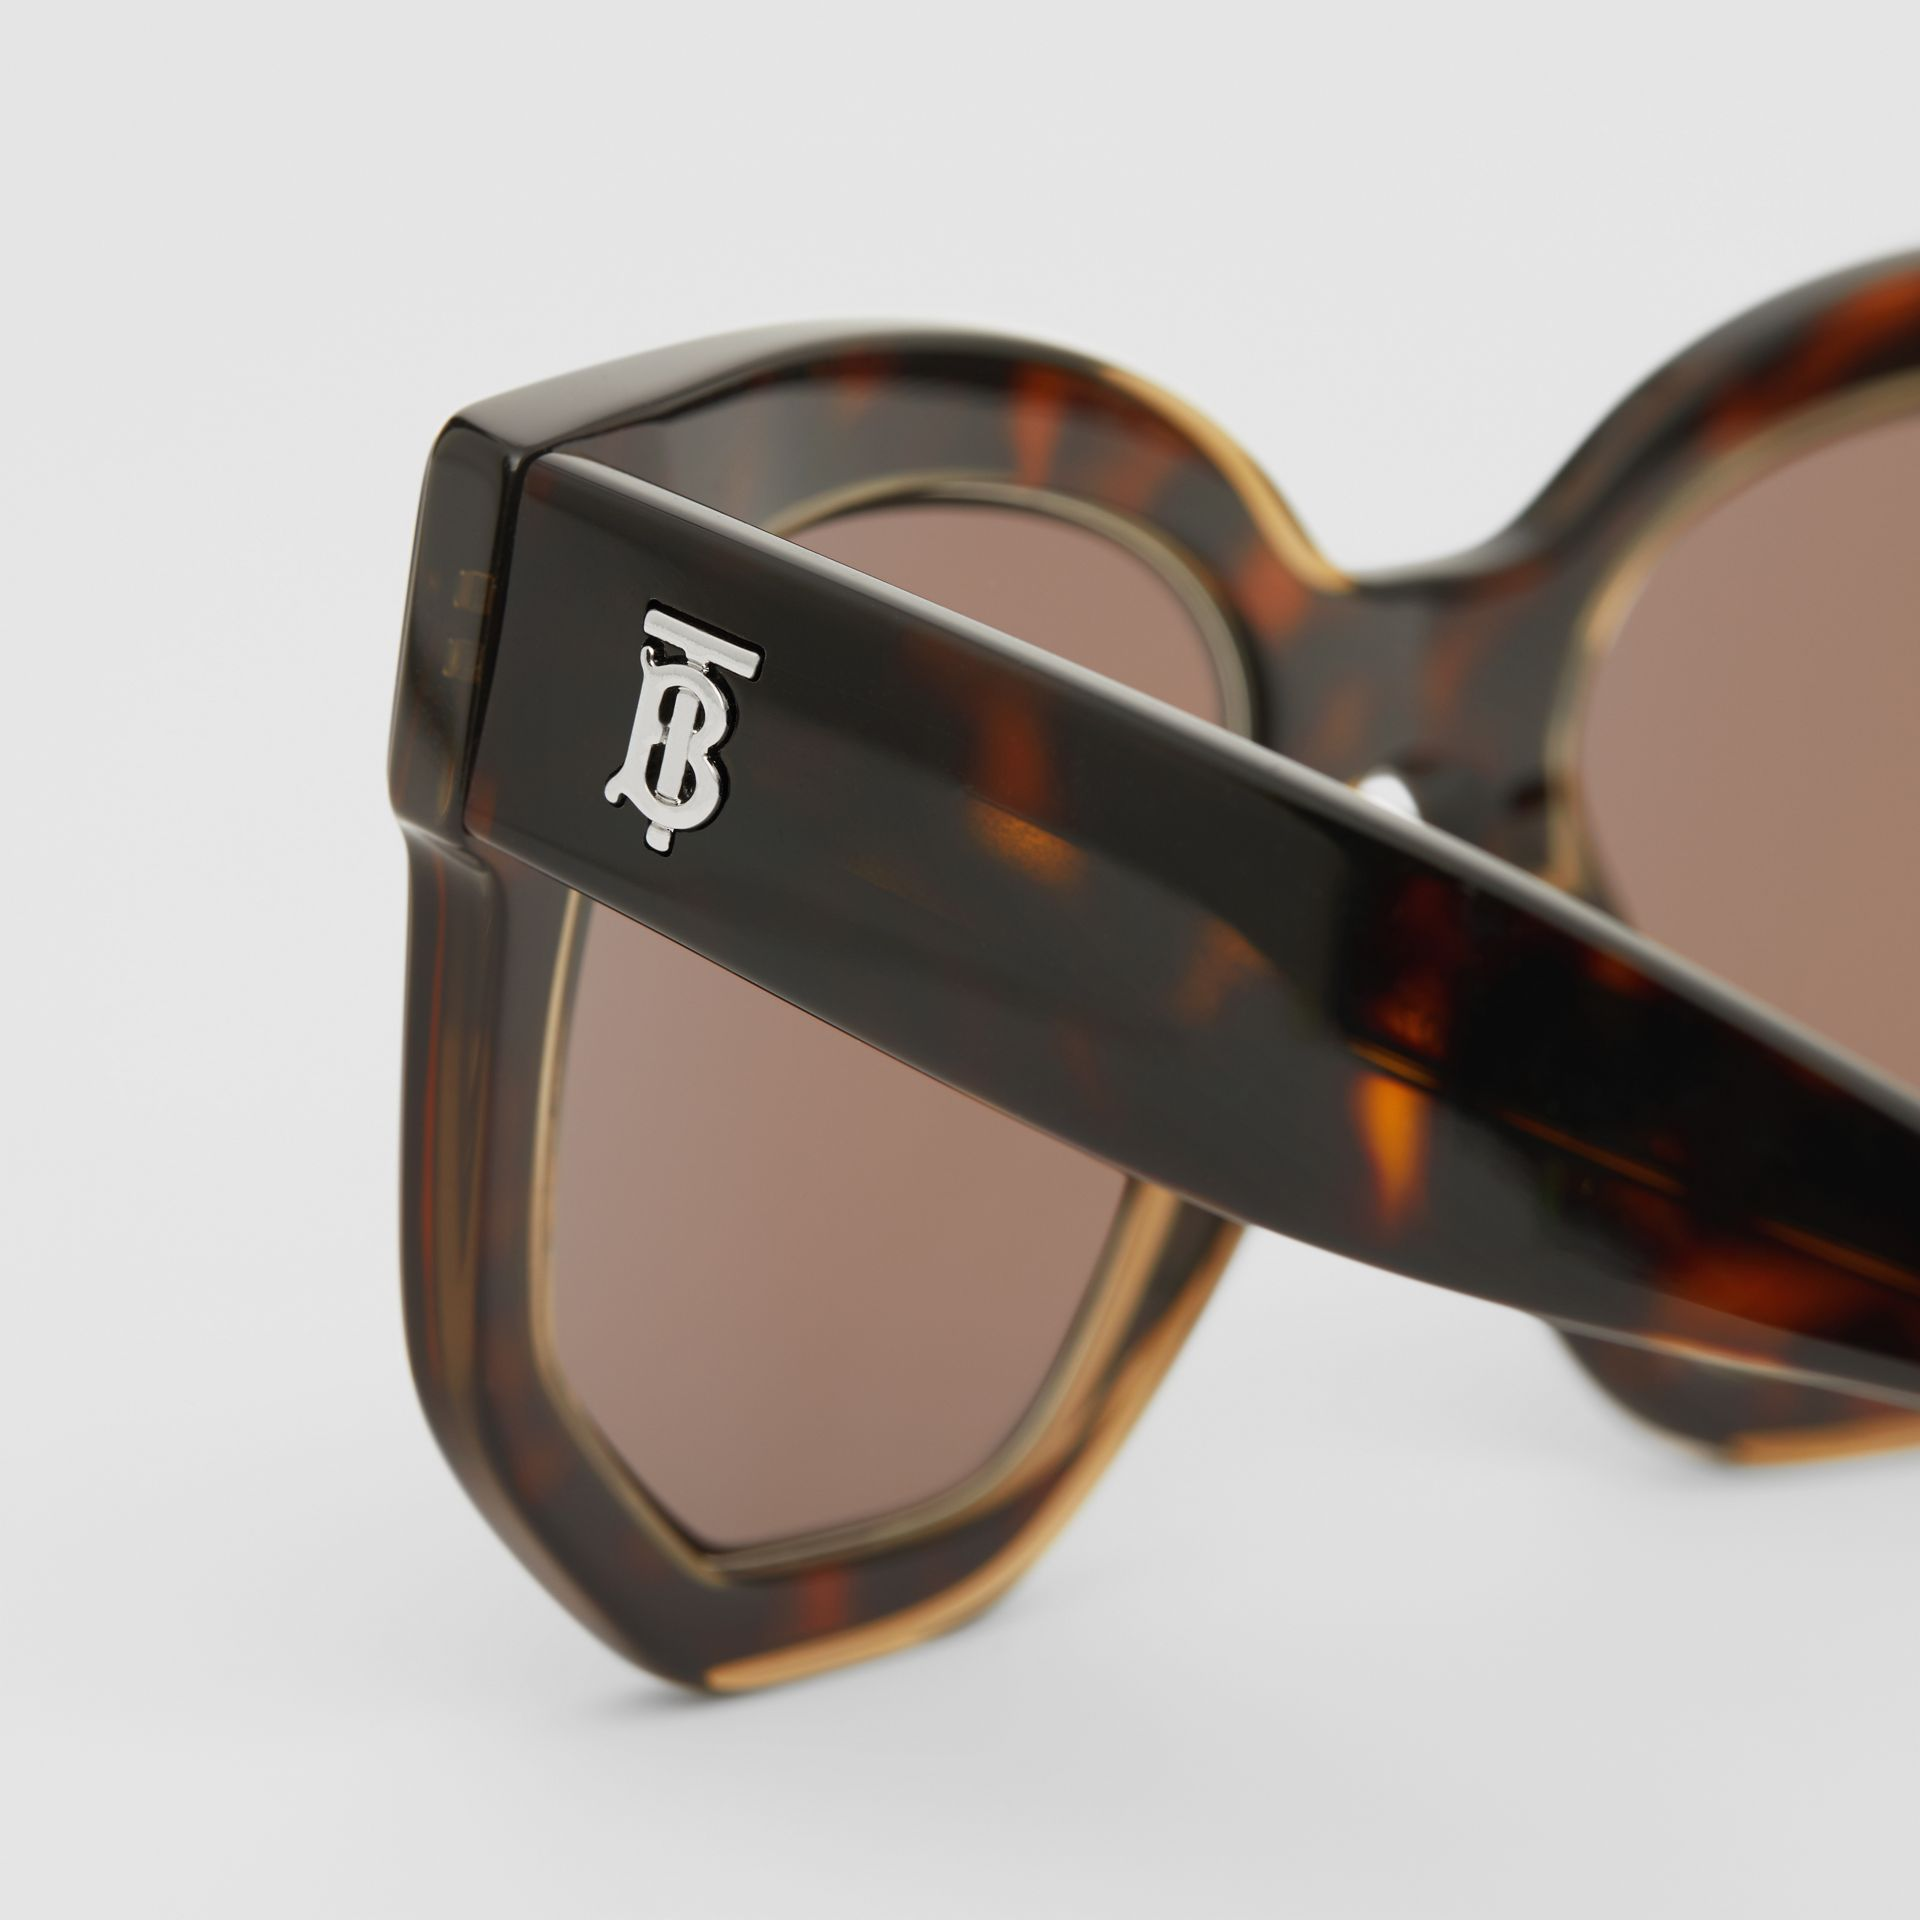 Geometric Frame Sunglasses in Tortoiseshell - Women | Burberry - gallery image 1